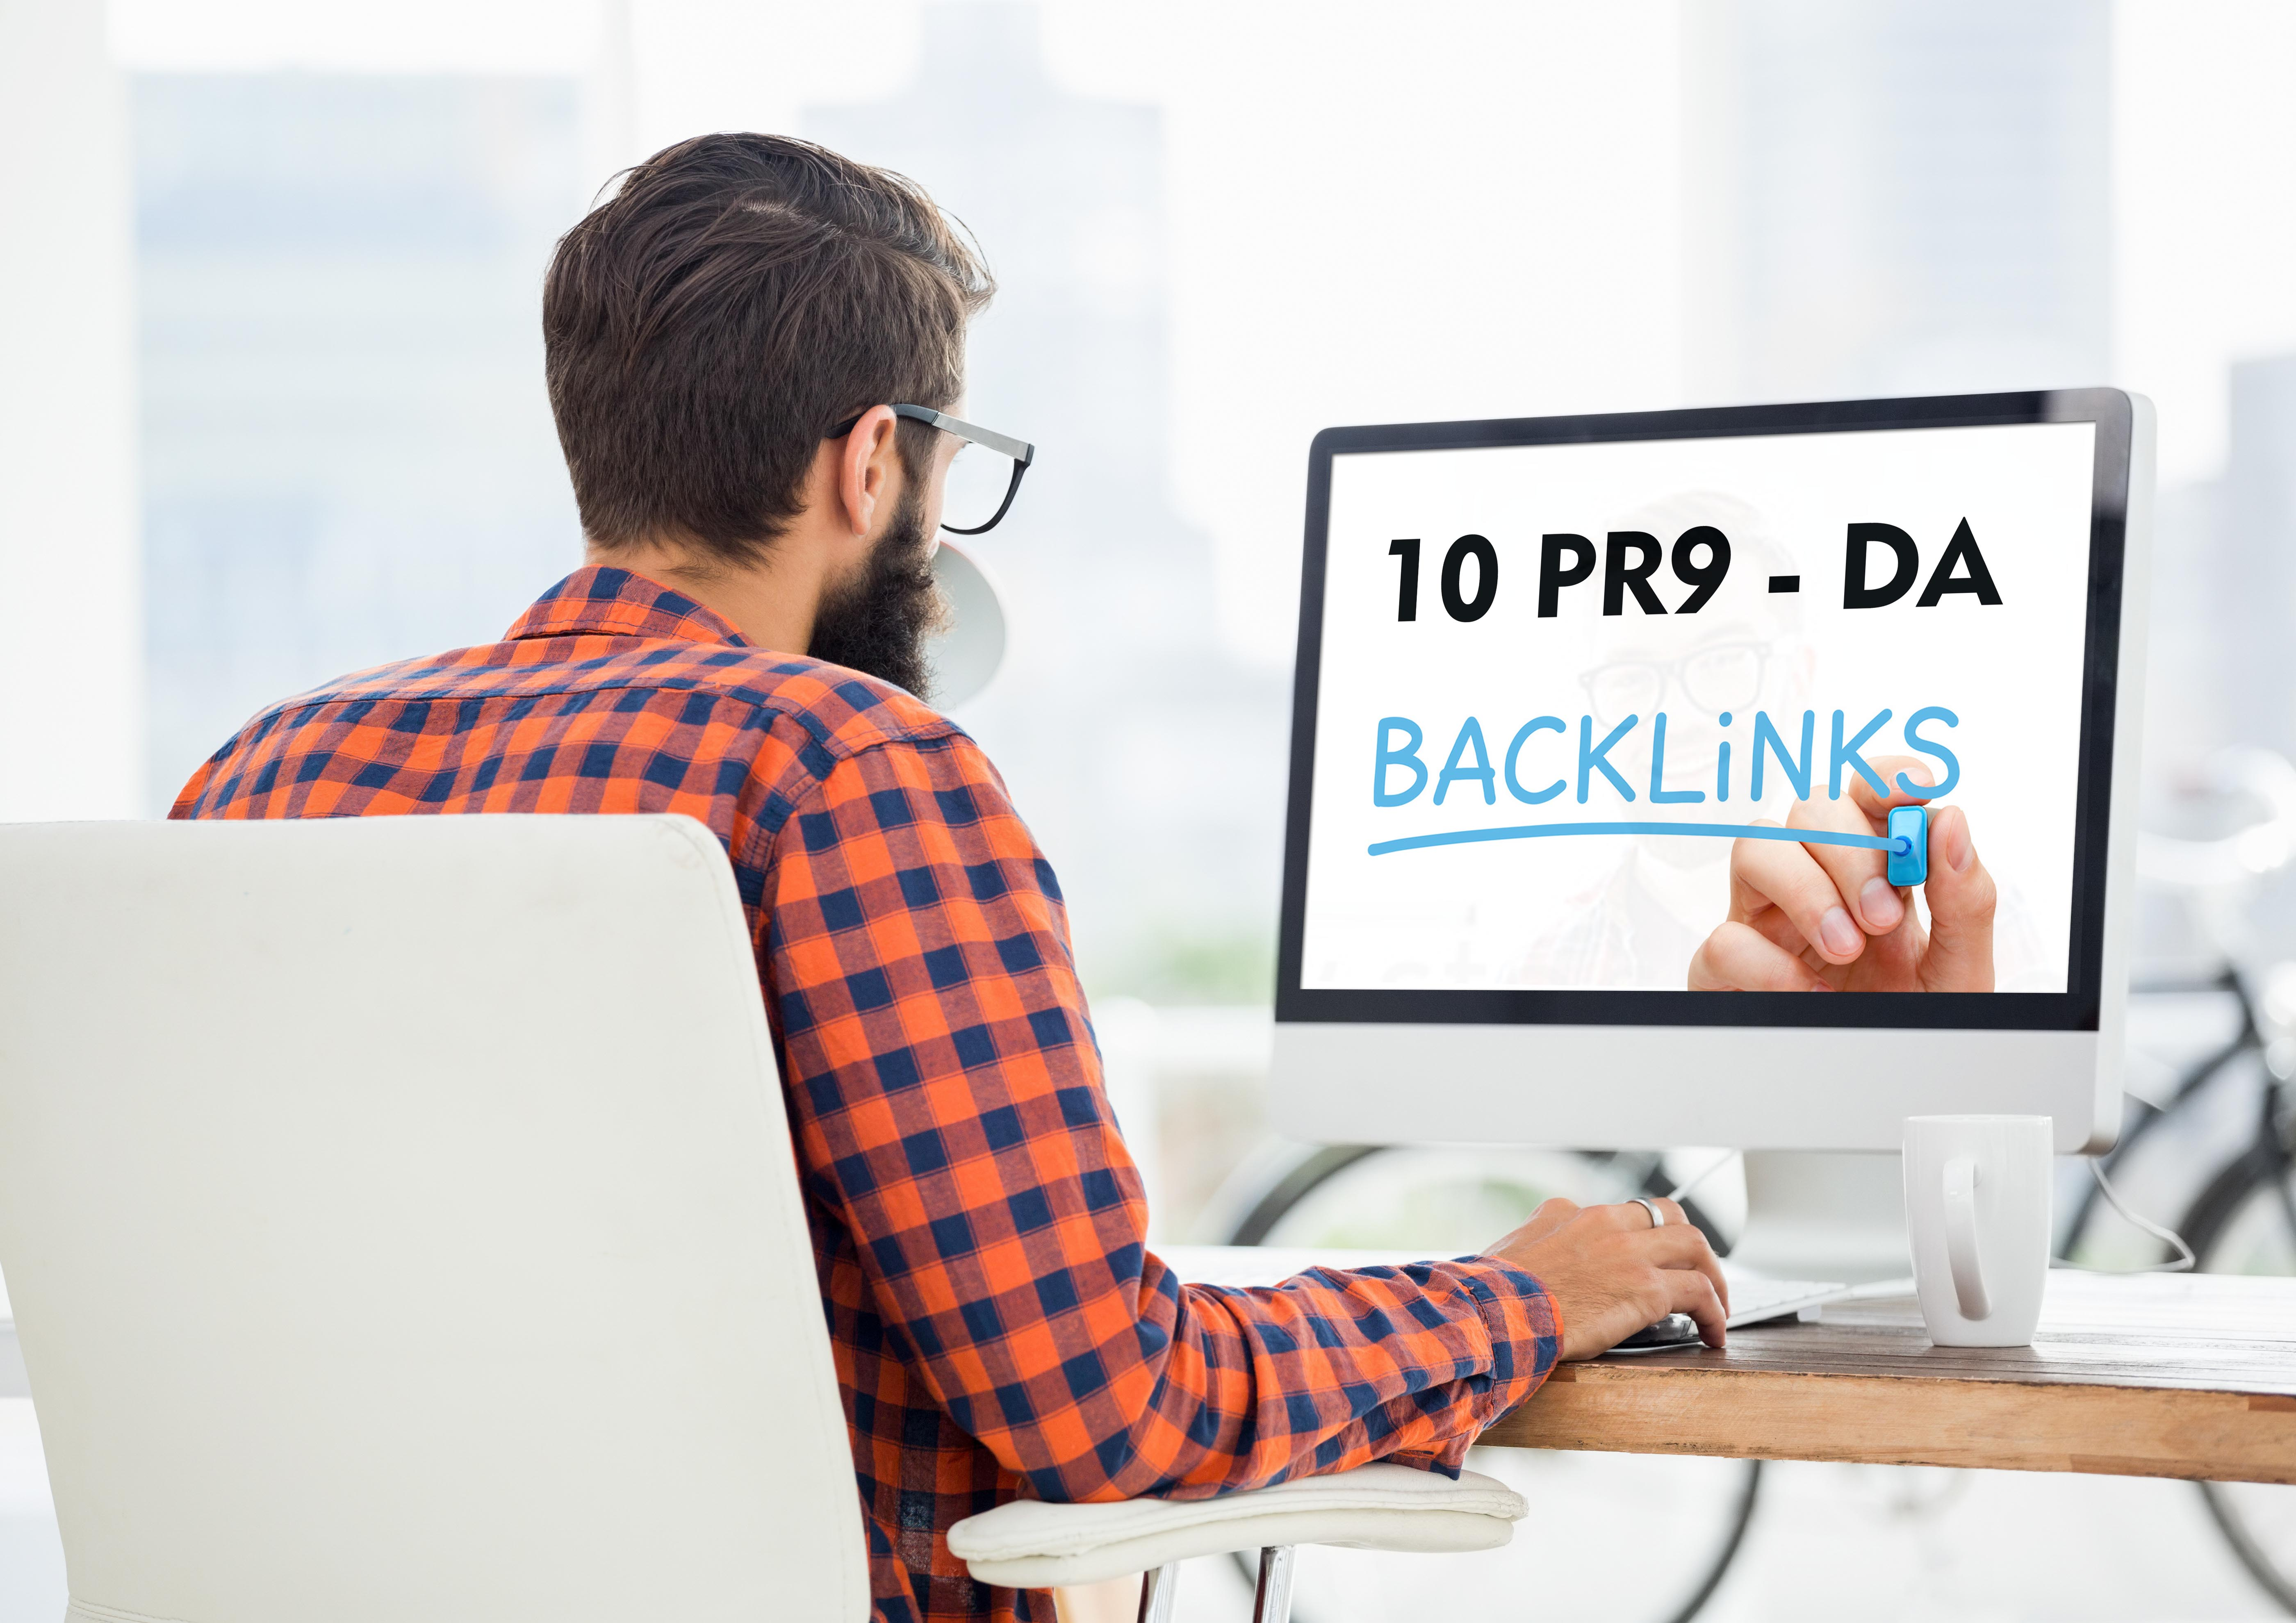 Provide 10 PR9 - DA (Domain Authority) 70+ to Boost your Google Ranking